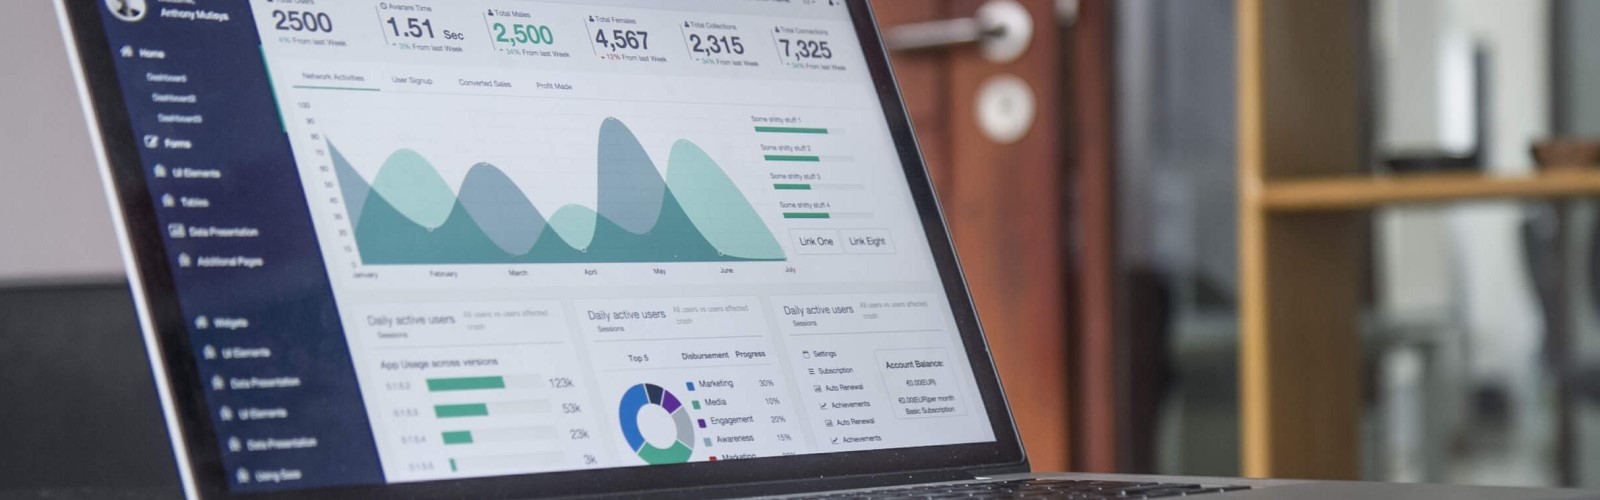 3 Marketing Strategies to Grow Your Software Company's Revenue in 2020-Banner